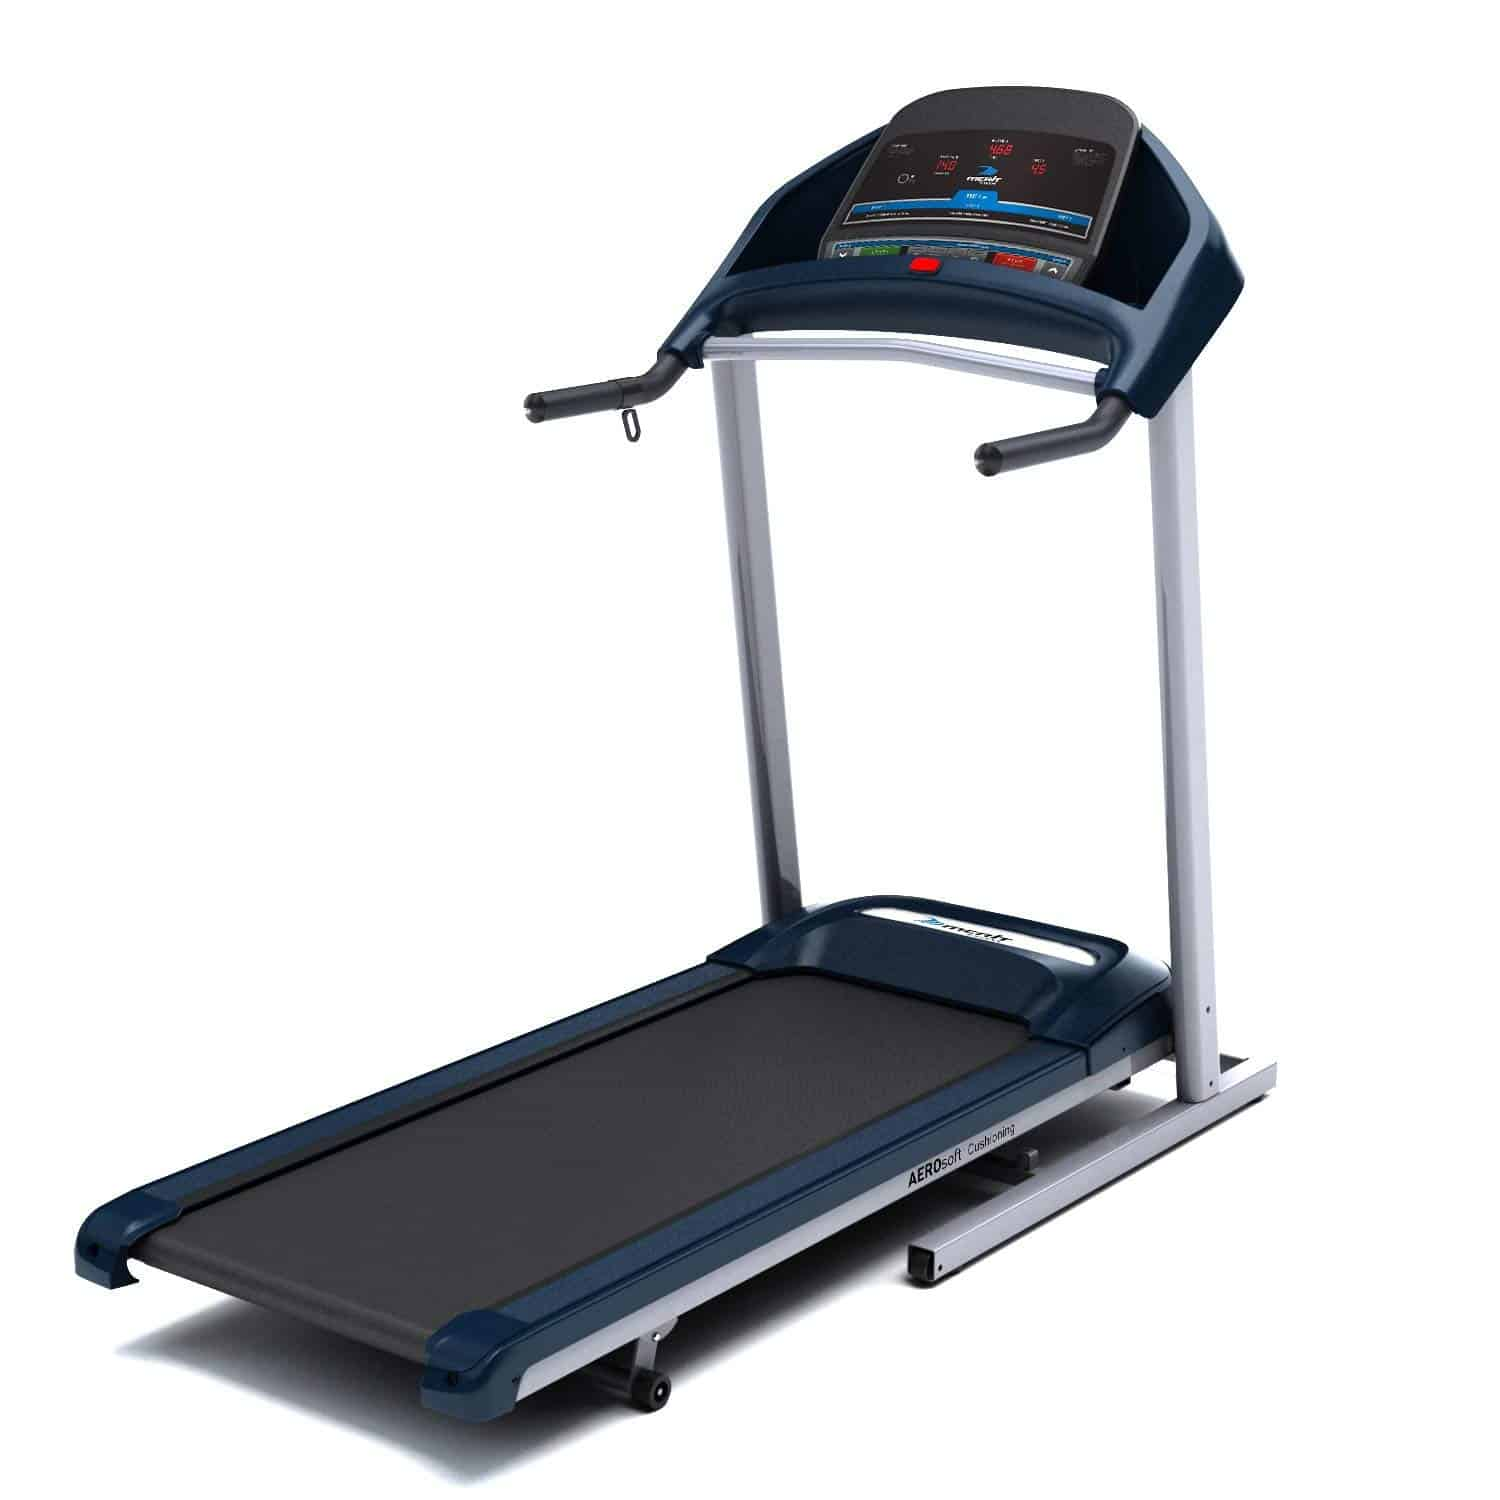 Merit 715T Plus Treadmill Review